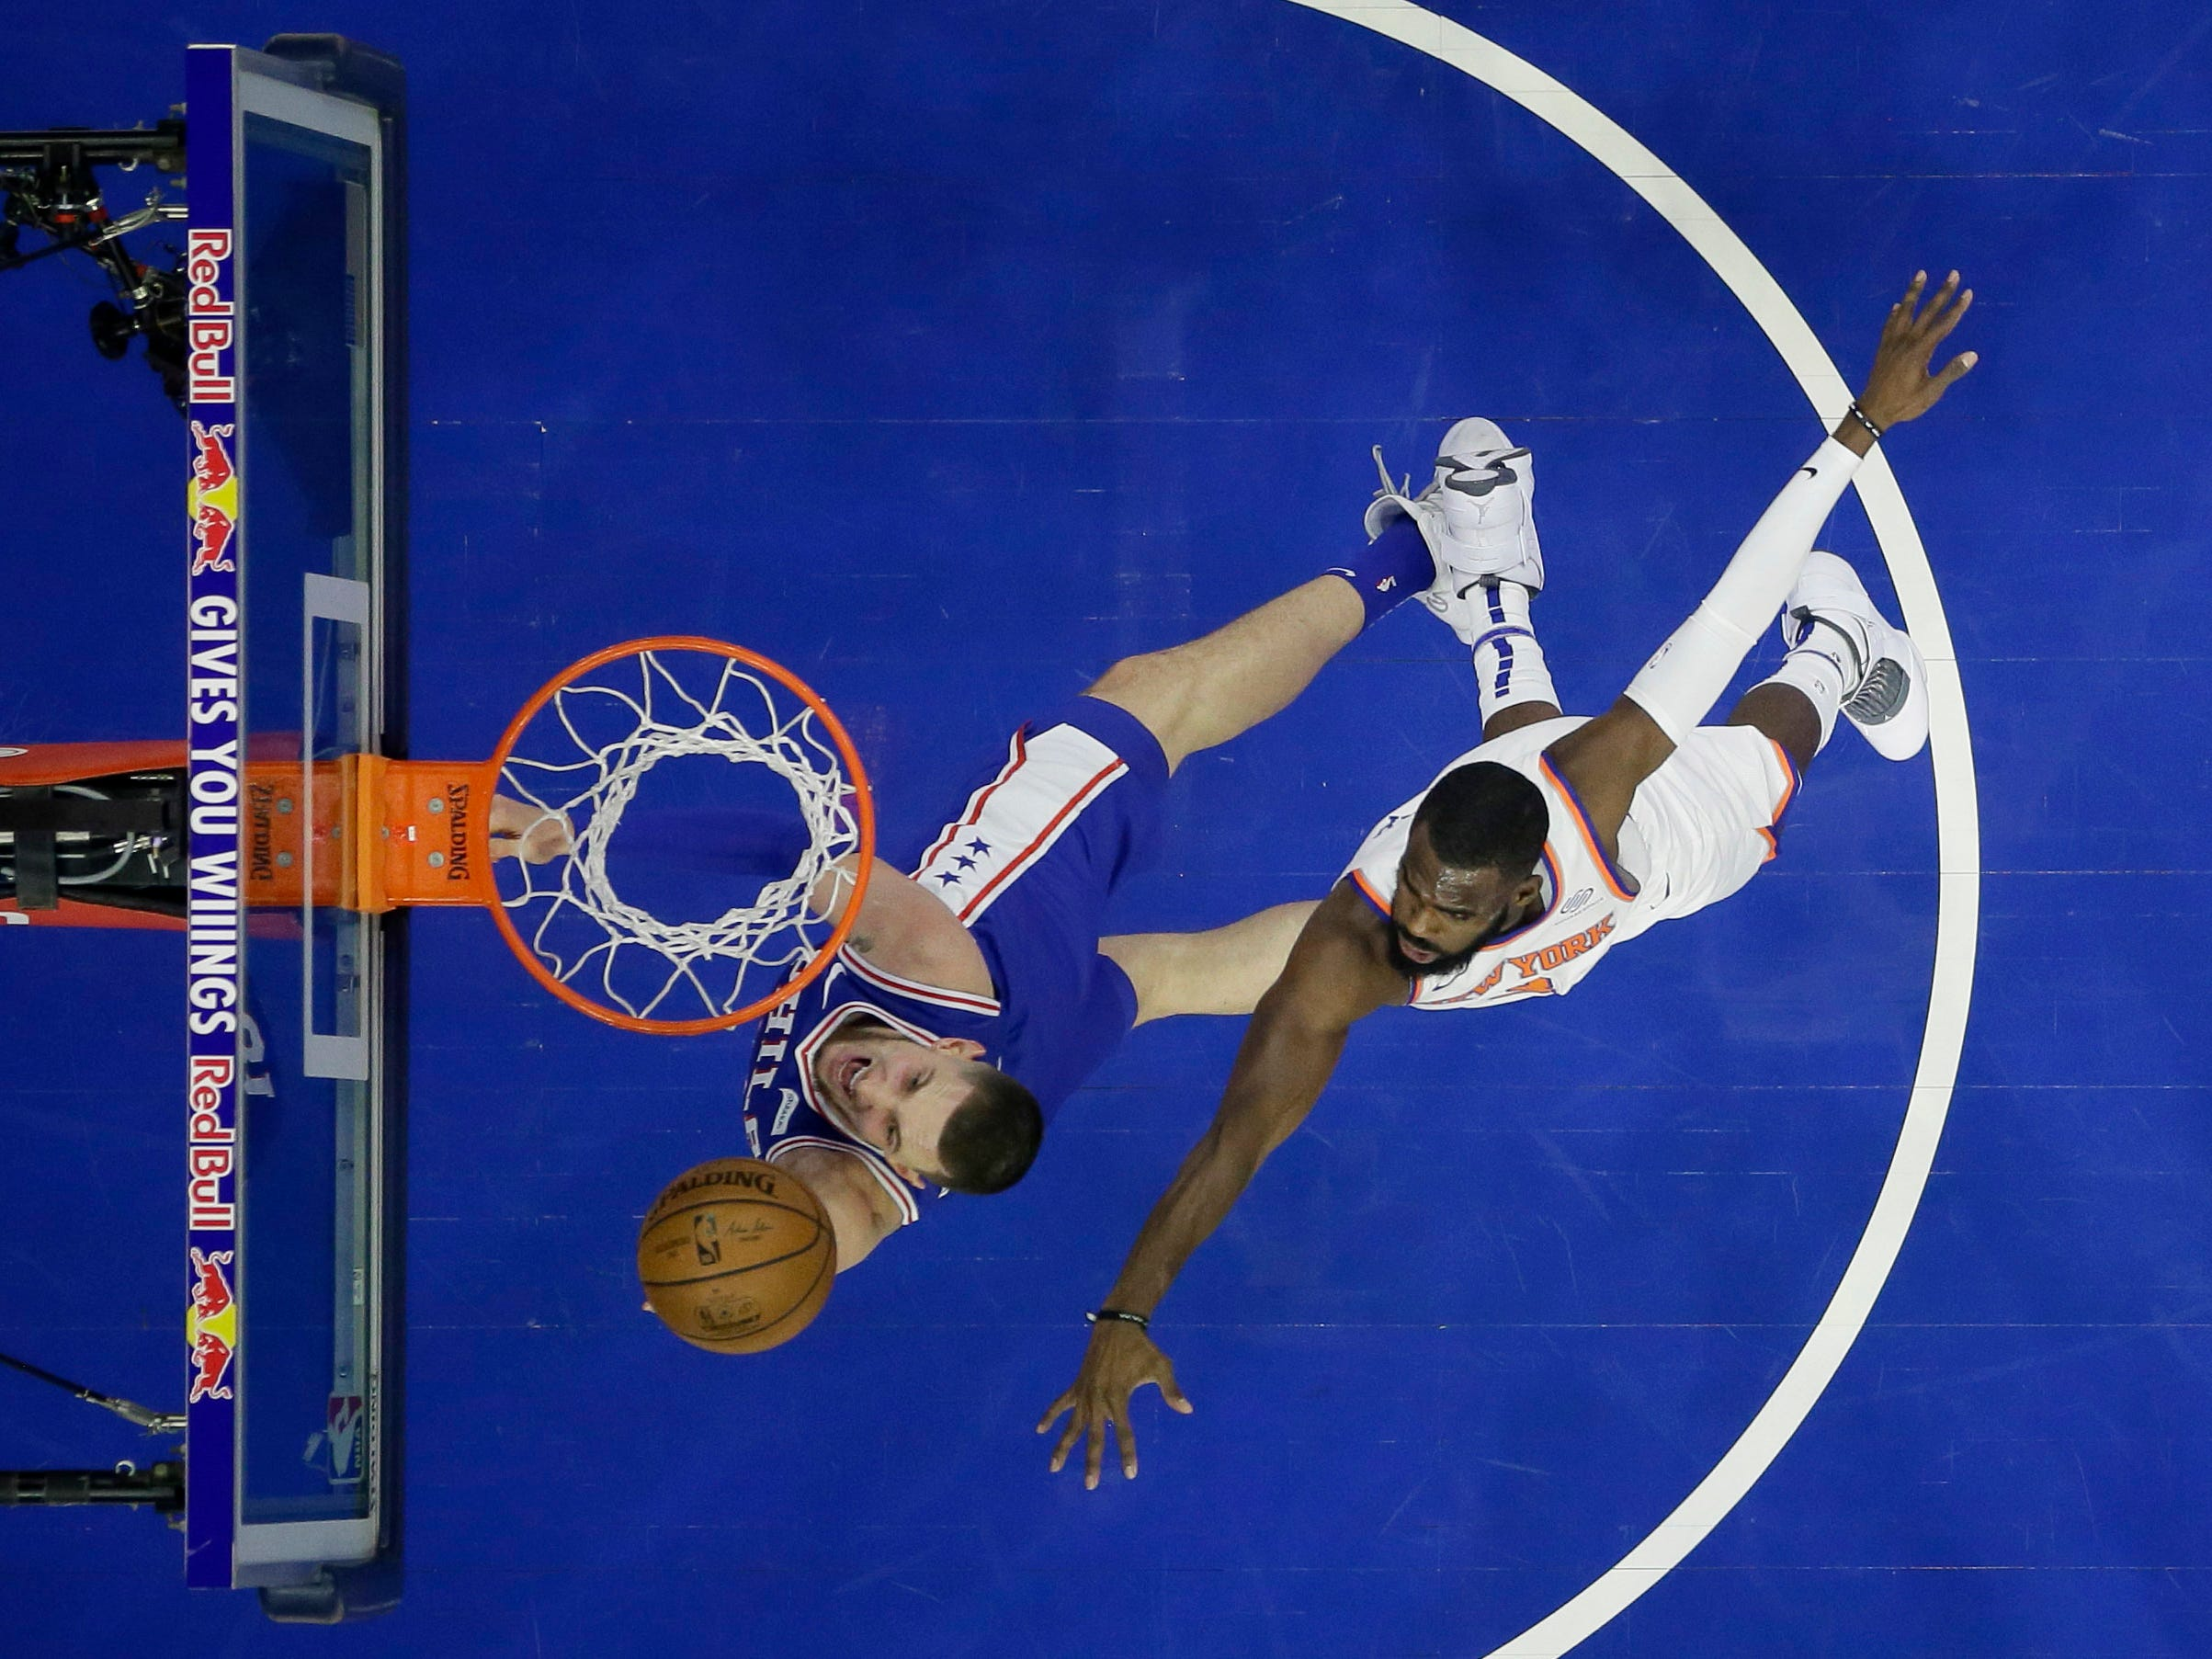 Philadelphia 76ers' Mike Muscala, left, goes up for a shot against New York Knicks' Tim Hardaway Jr. during the first half of an NBA basketball game, Wednesday, Dec. 19, 2018, in Philadelphia.